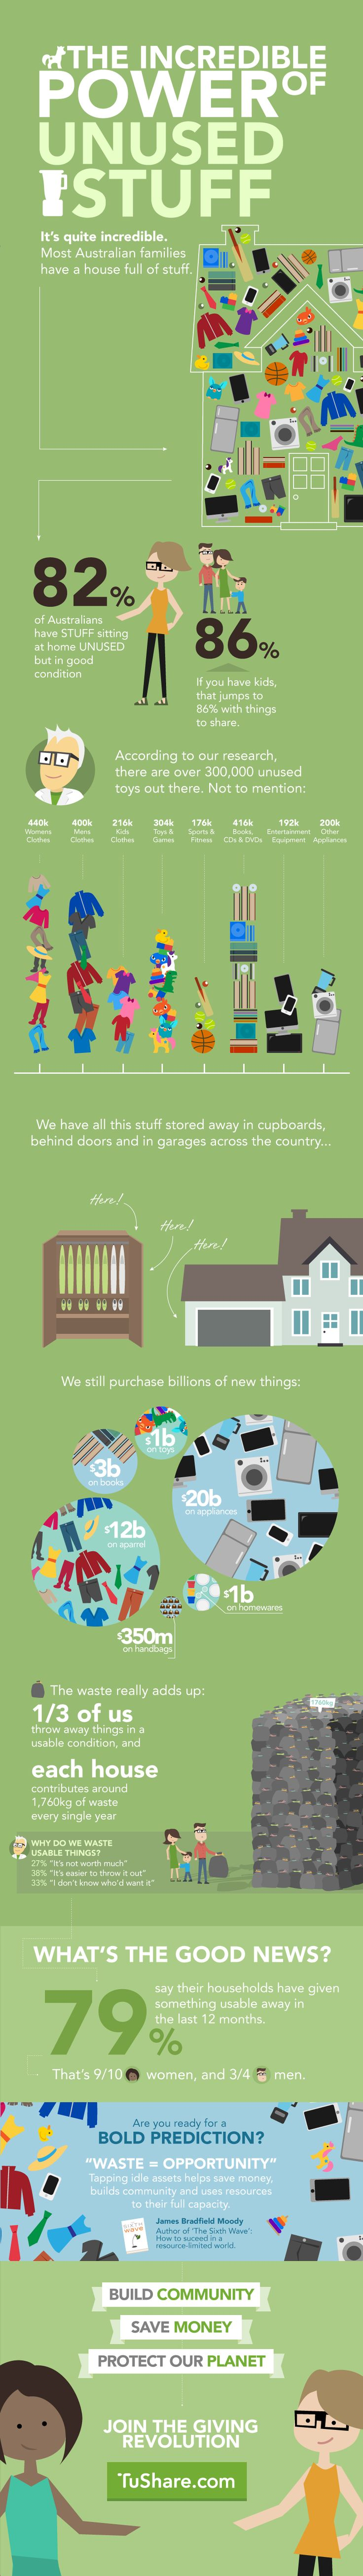 You won't believe what's hiding in EVERY Australian home.   Infographic on the state of the Sharing Economy in Australia - created from the results of a Newspoll survey May 2014.  waste, resuse, recycle, sharing economy, information, info graphic, data, sharing, collaborative consumption, consumer behaviour, household items, up cycling, tips, how to,